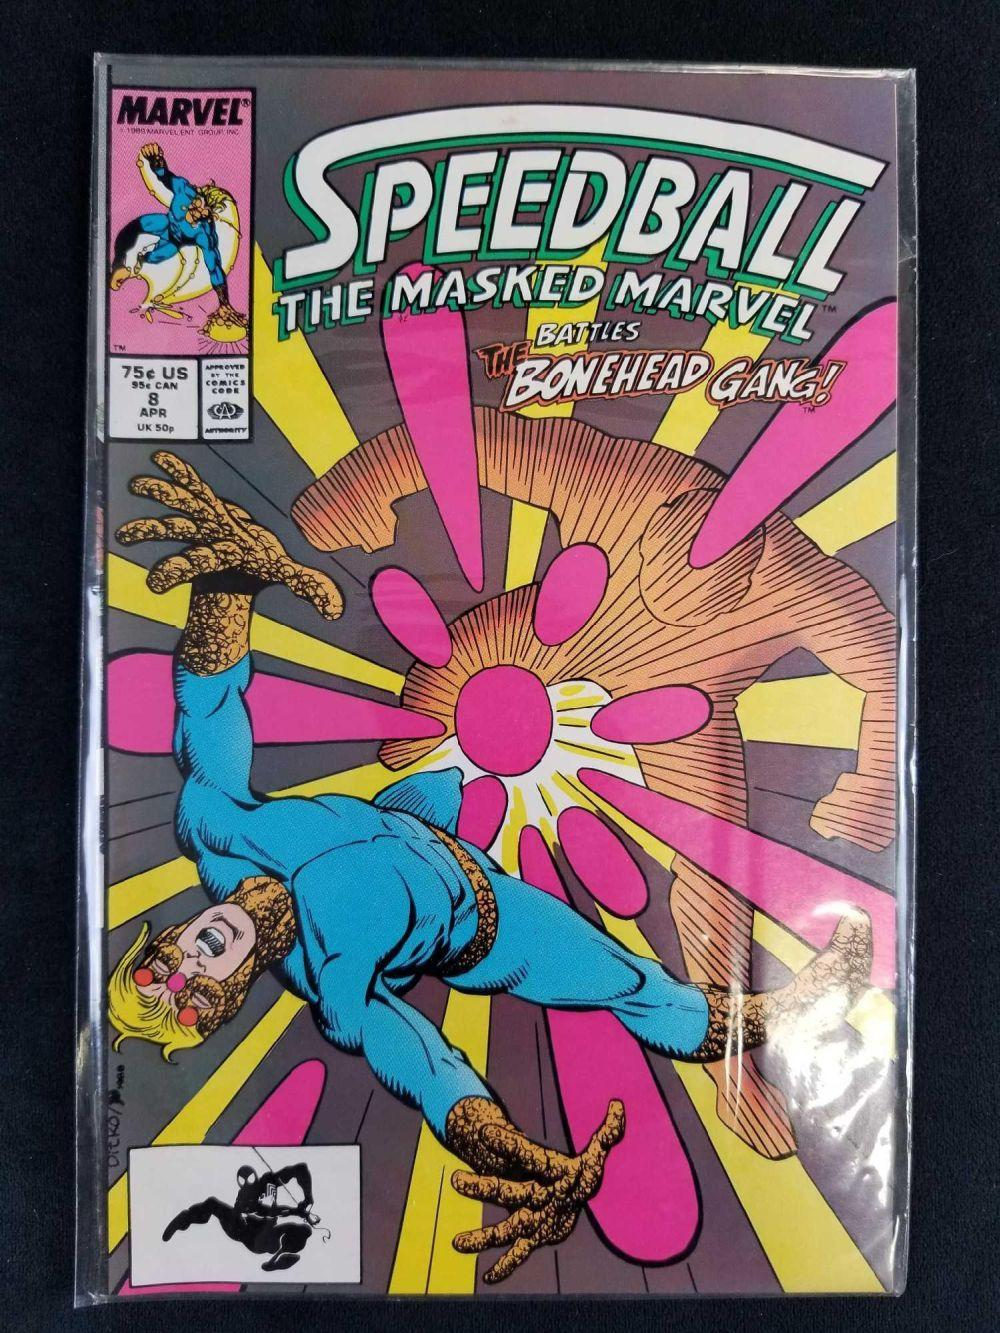 Lot 33: Lot of 5 Speedball The Masked Marvel Comics